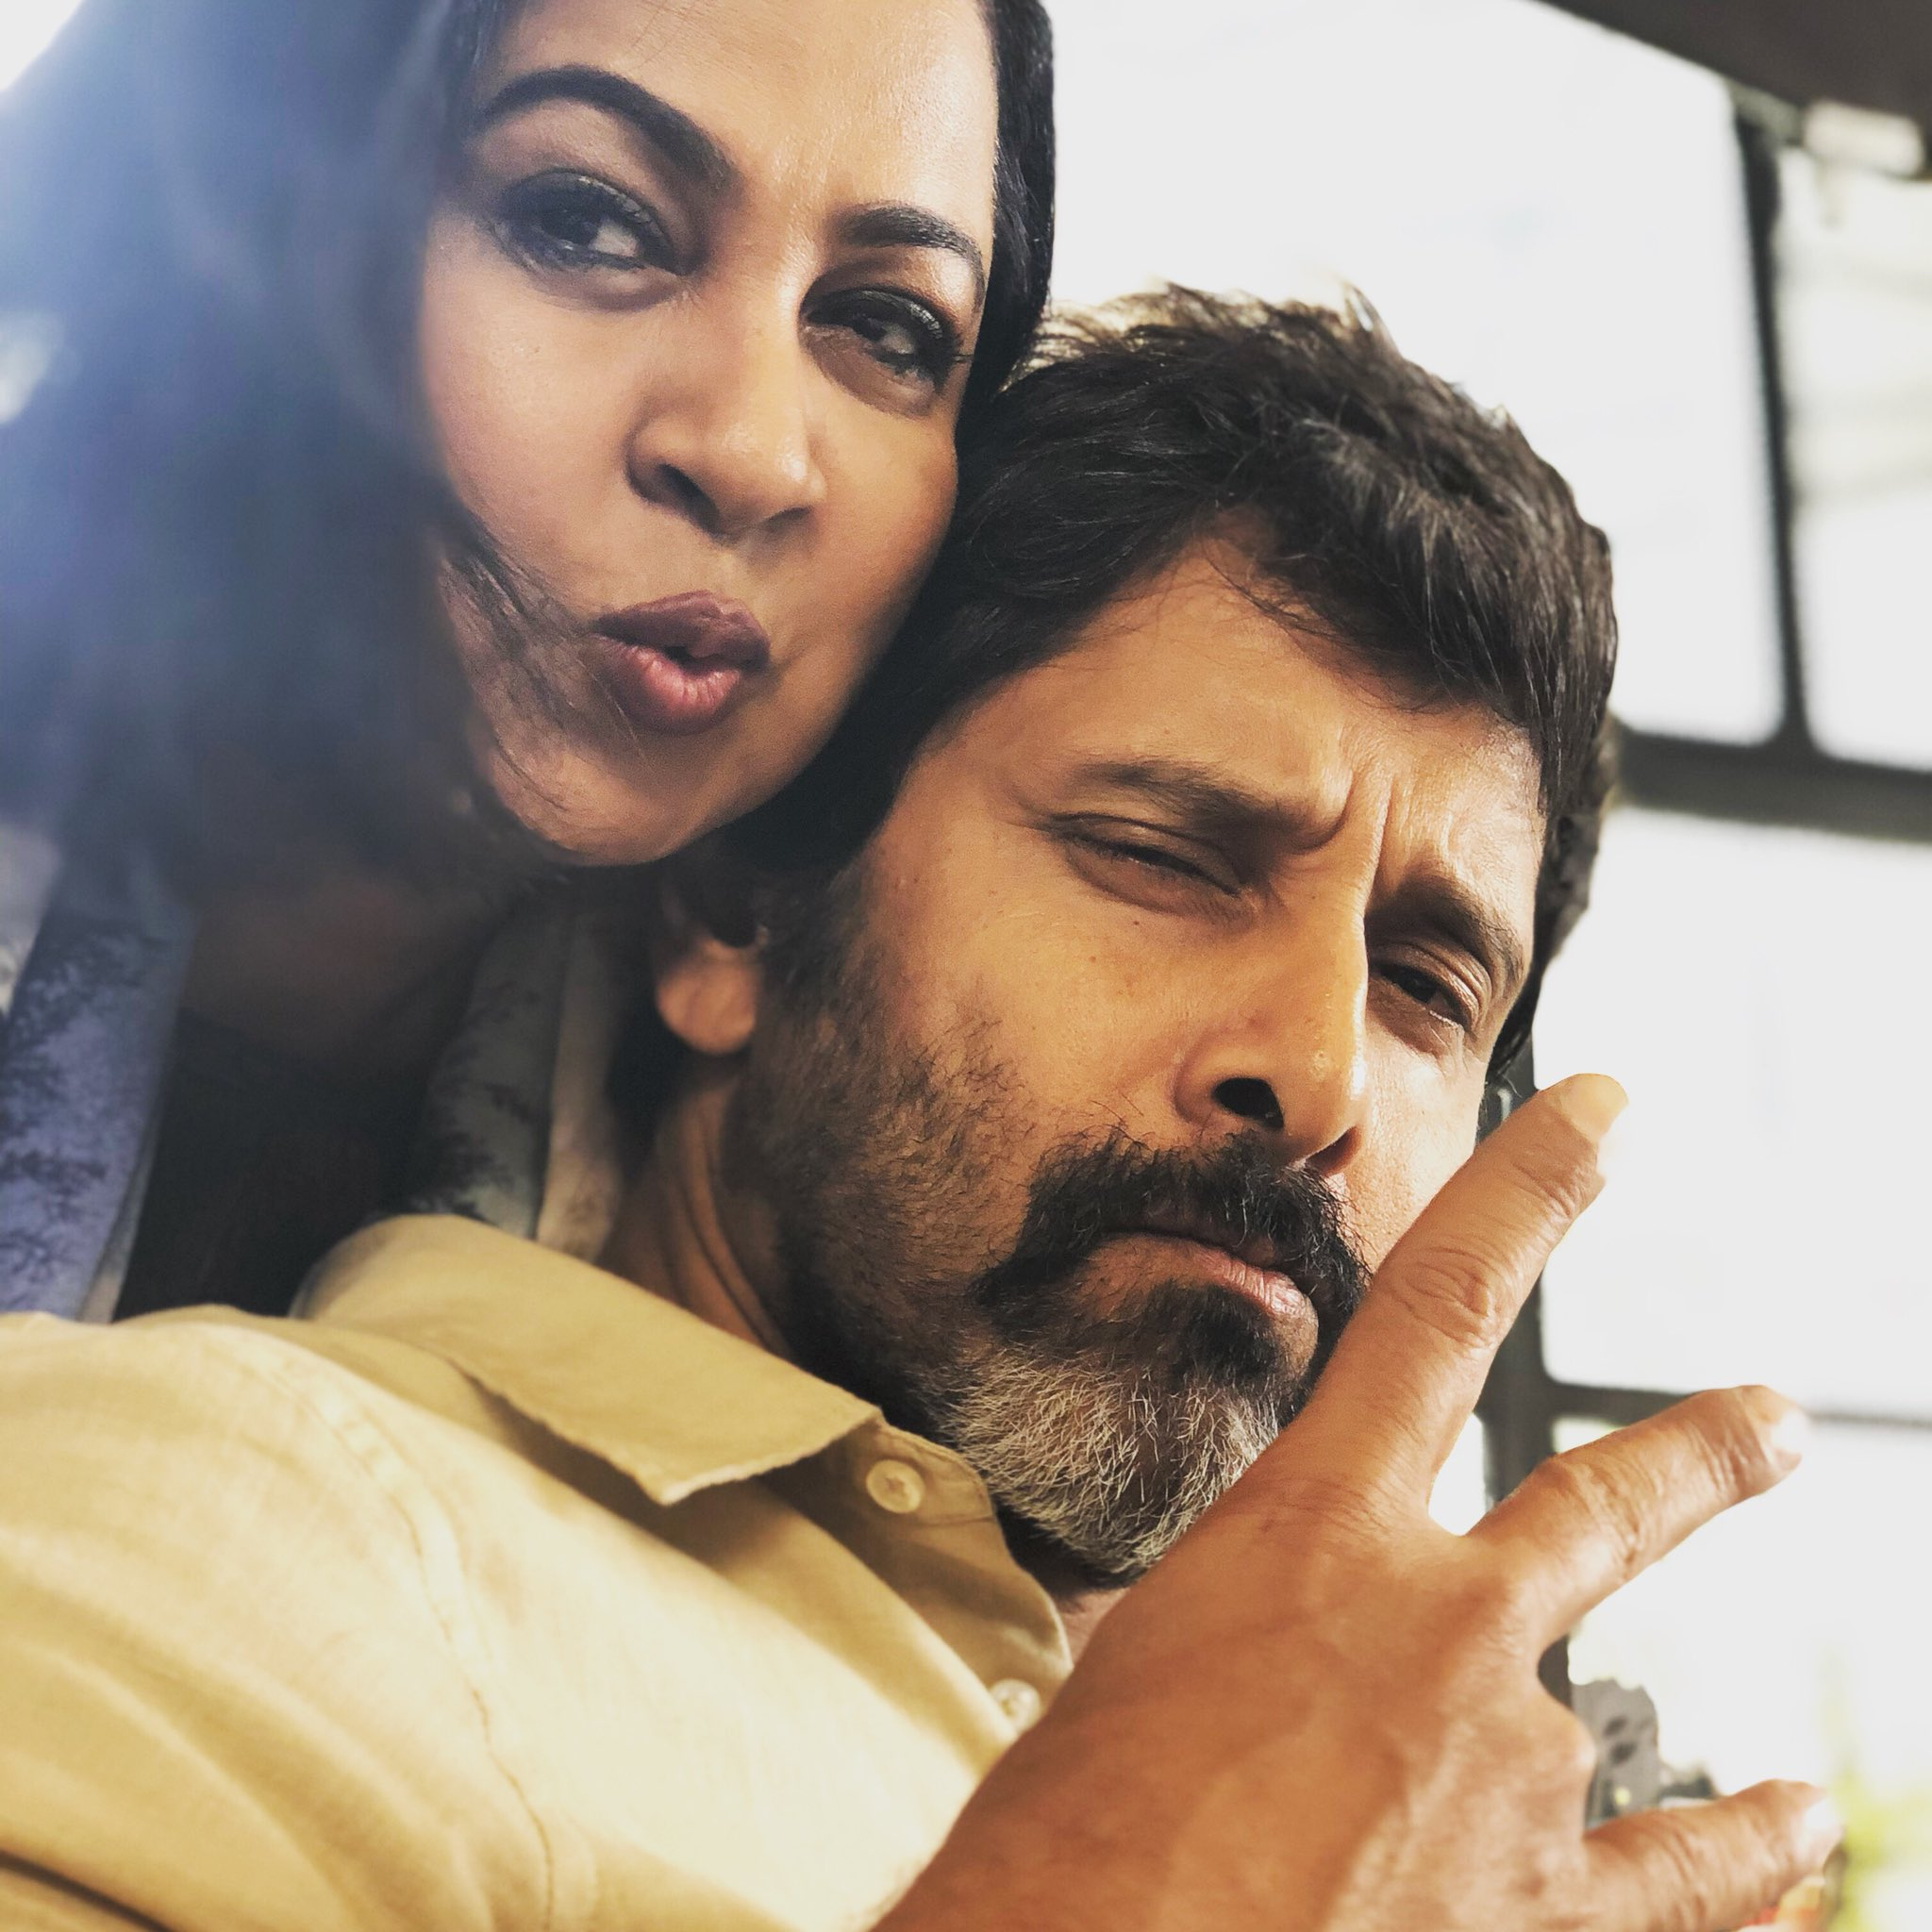 Actor Vikram and Radikaa SArathkumar at Dhruva Natchathiram shooting spot